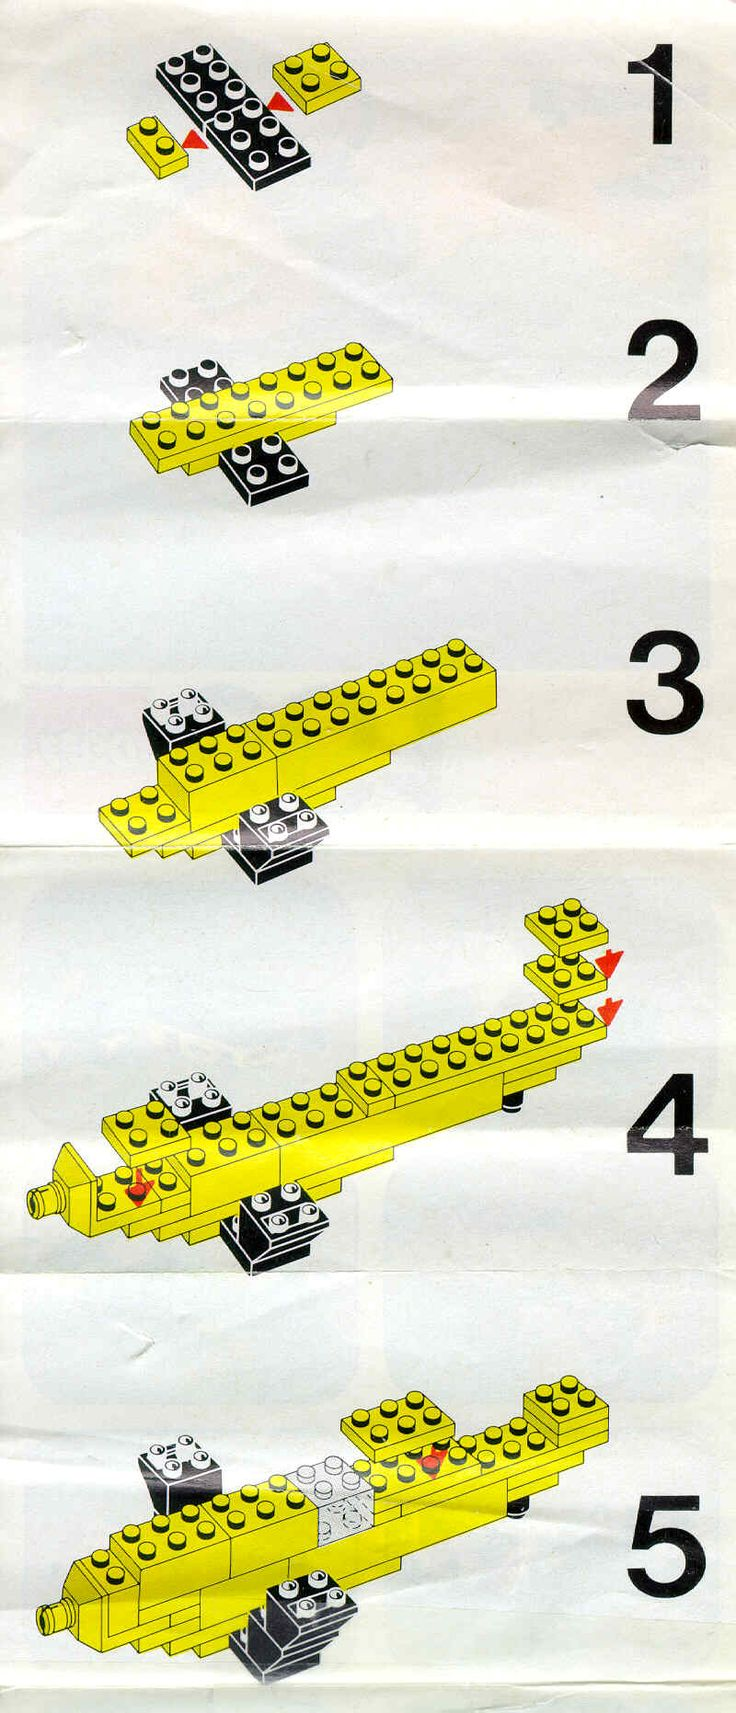 Pin lego 60032 city the lego summer wave in official images on - View Lego Instructions For Spirit Of St Louis Set Number 661 To Help You Build These Lego Sets